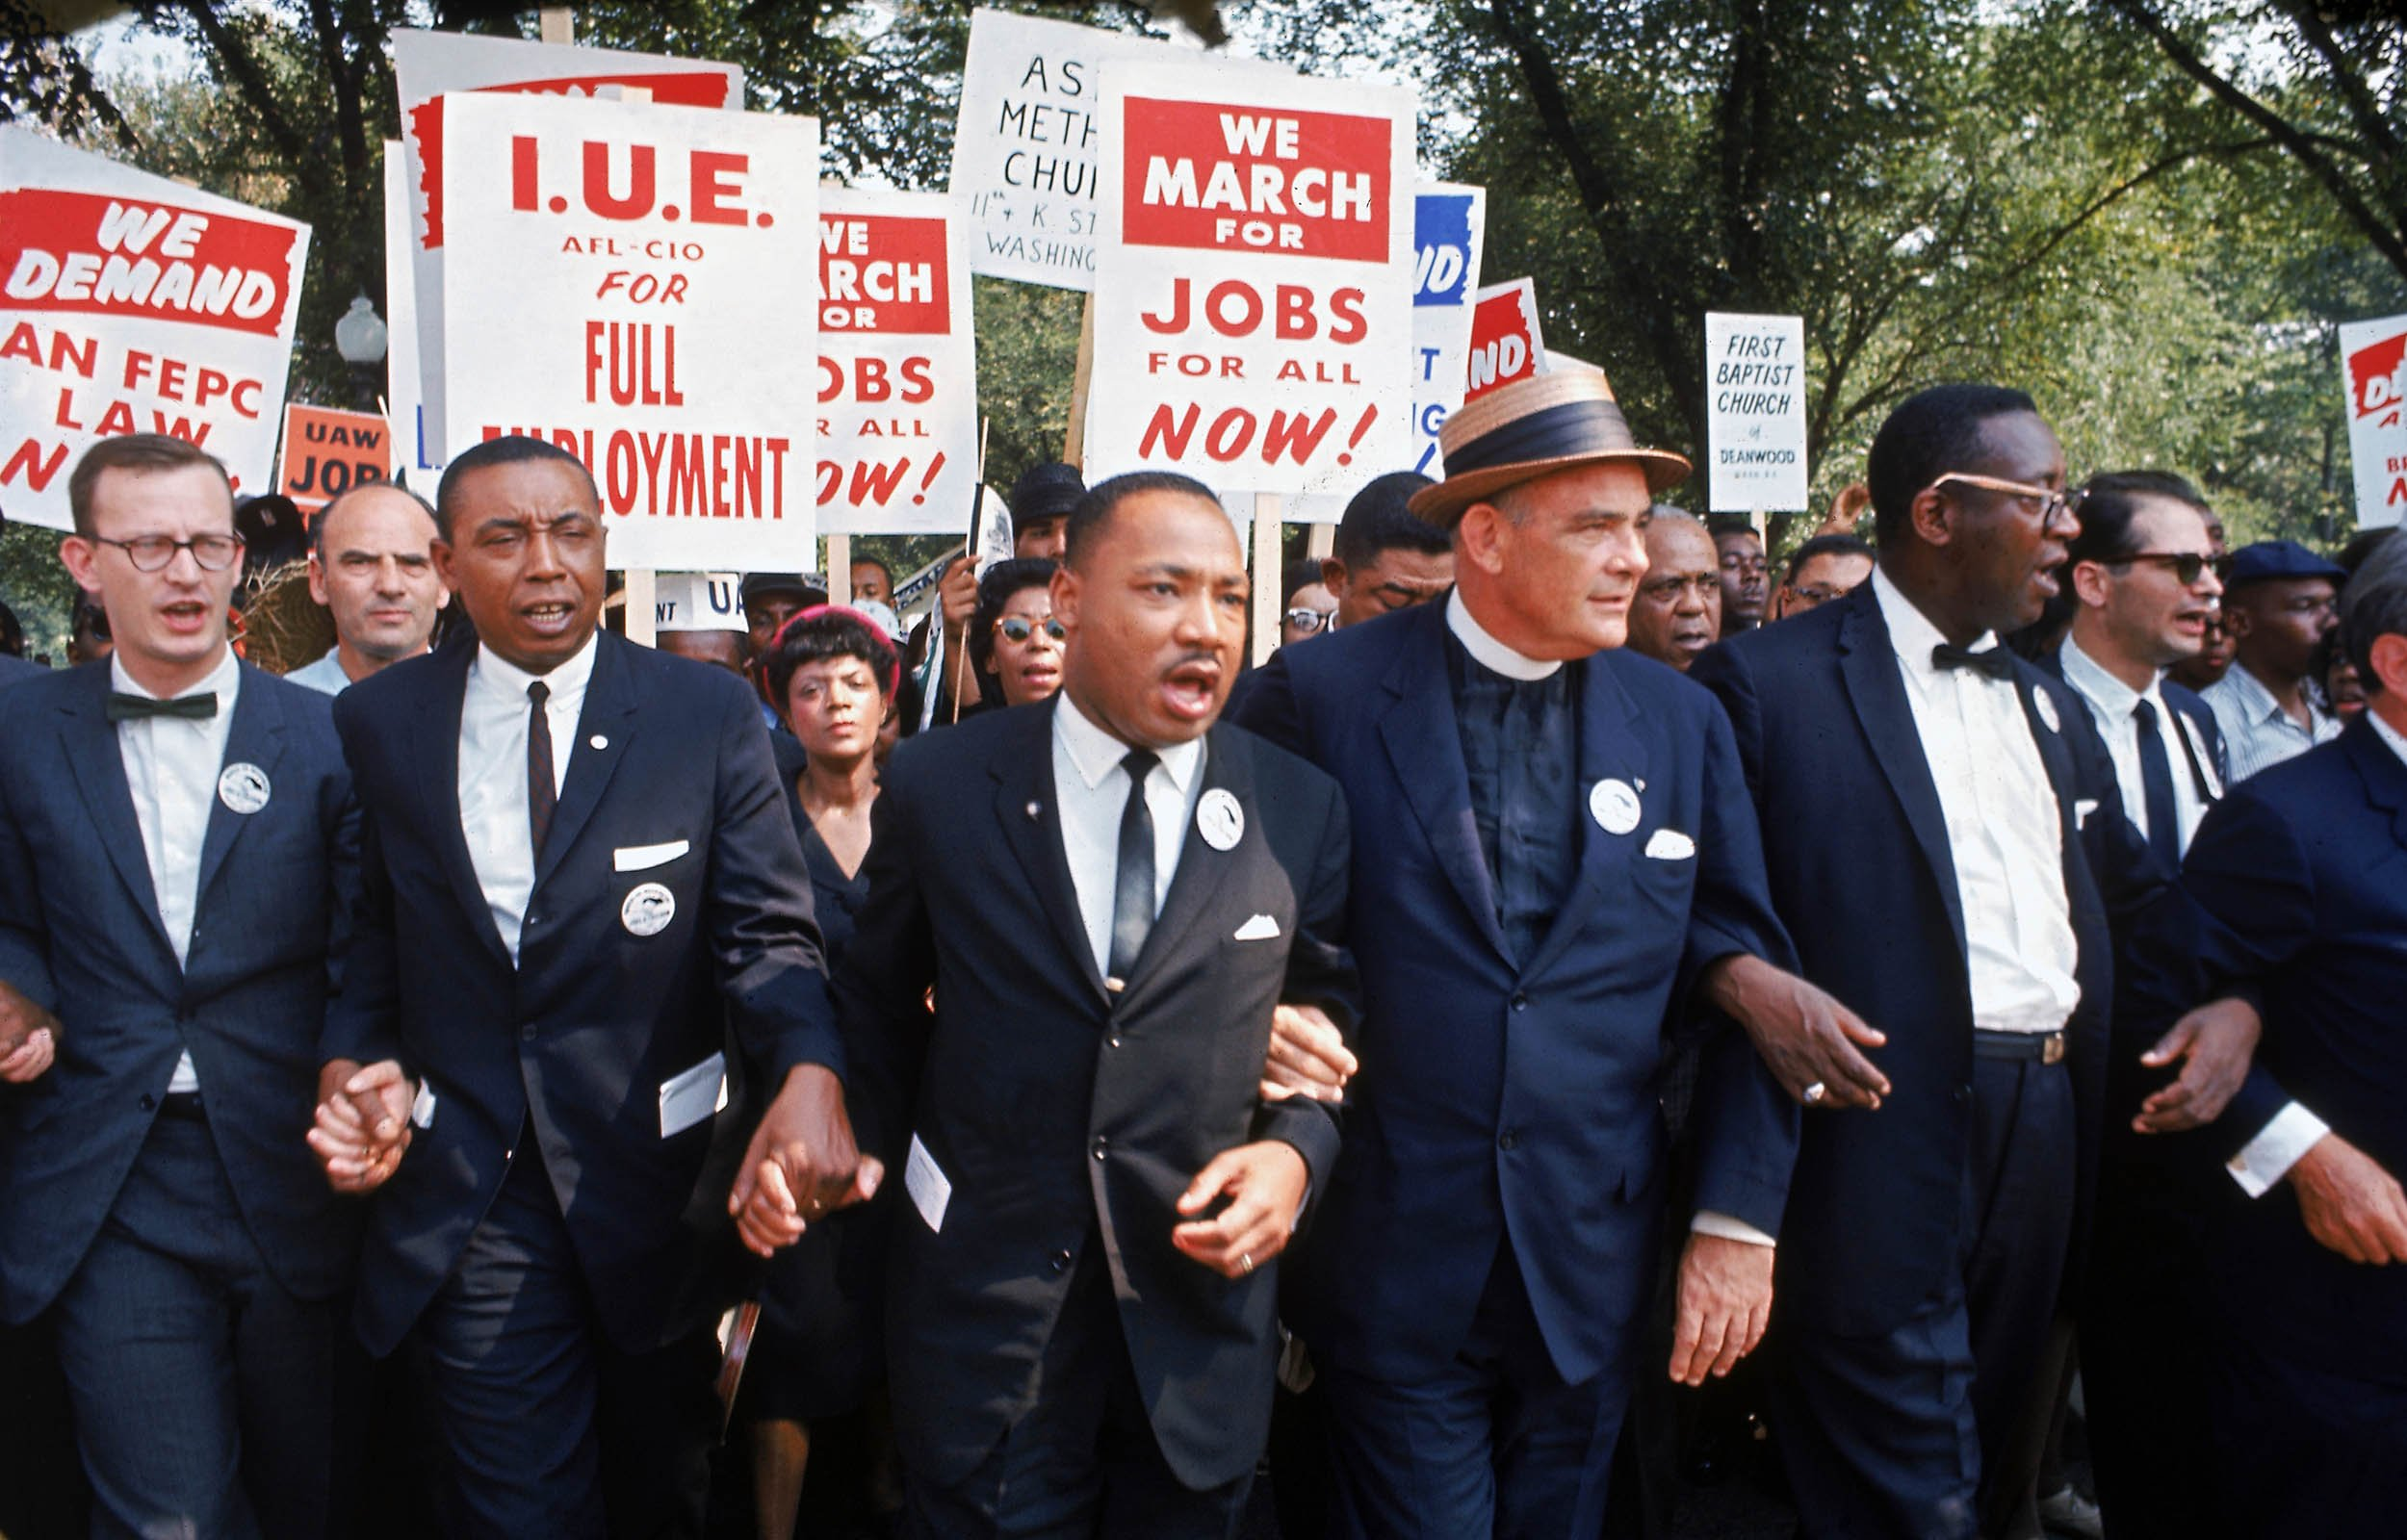 march washington luther mlk martin king jr dr civil marching 1963 rights freedom lewis rally jobs dc john signs speech